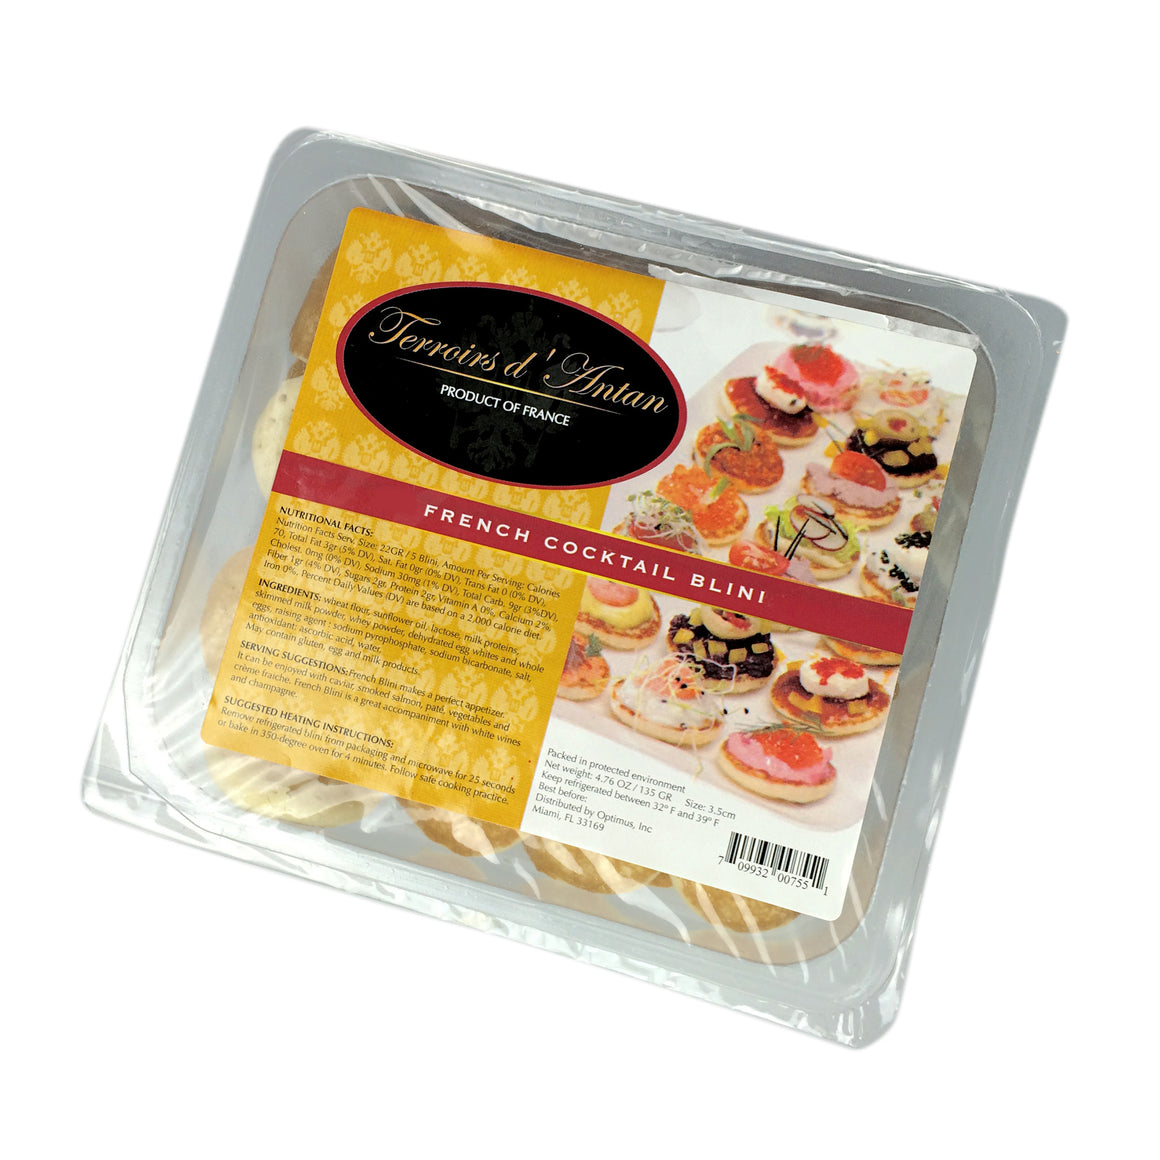 Buy French Cocktail Blinis for the Finest Caviar in the World, Kolikof.